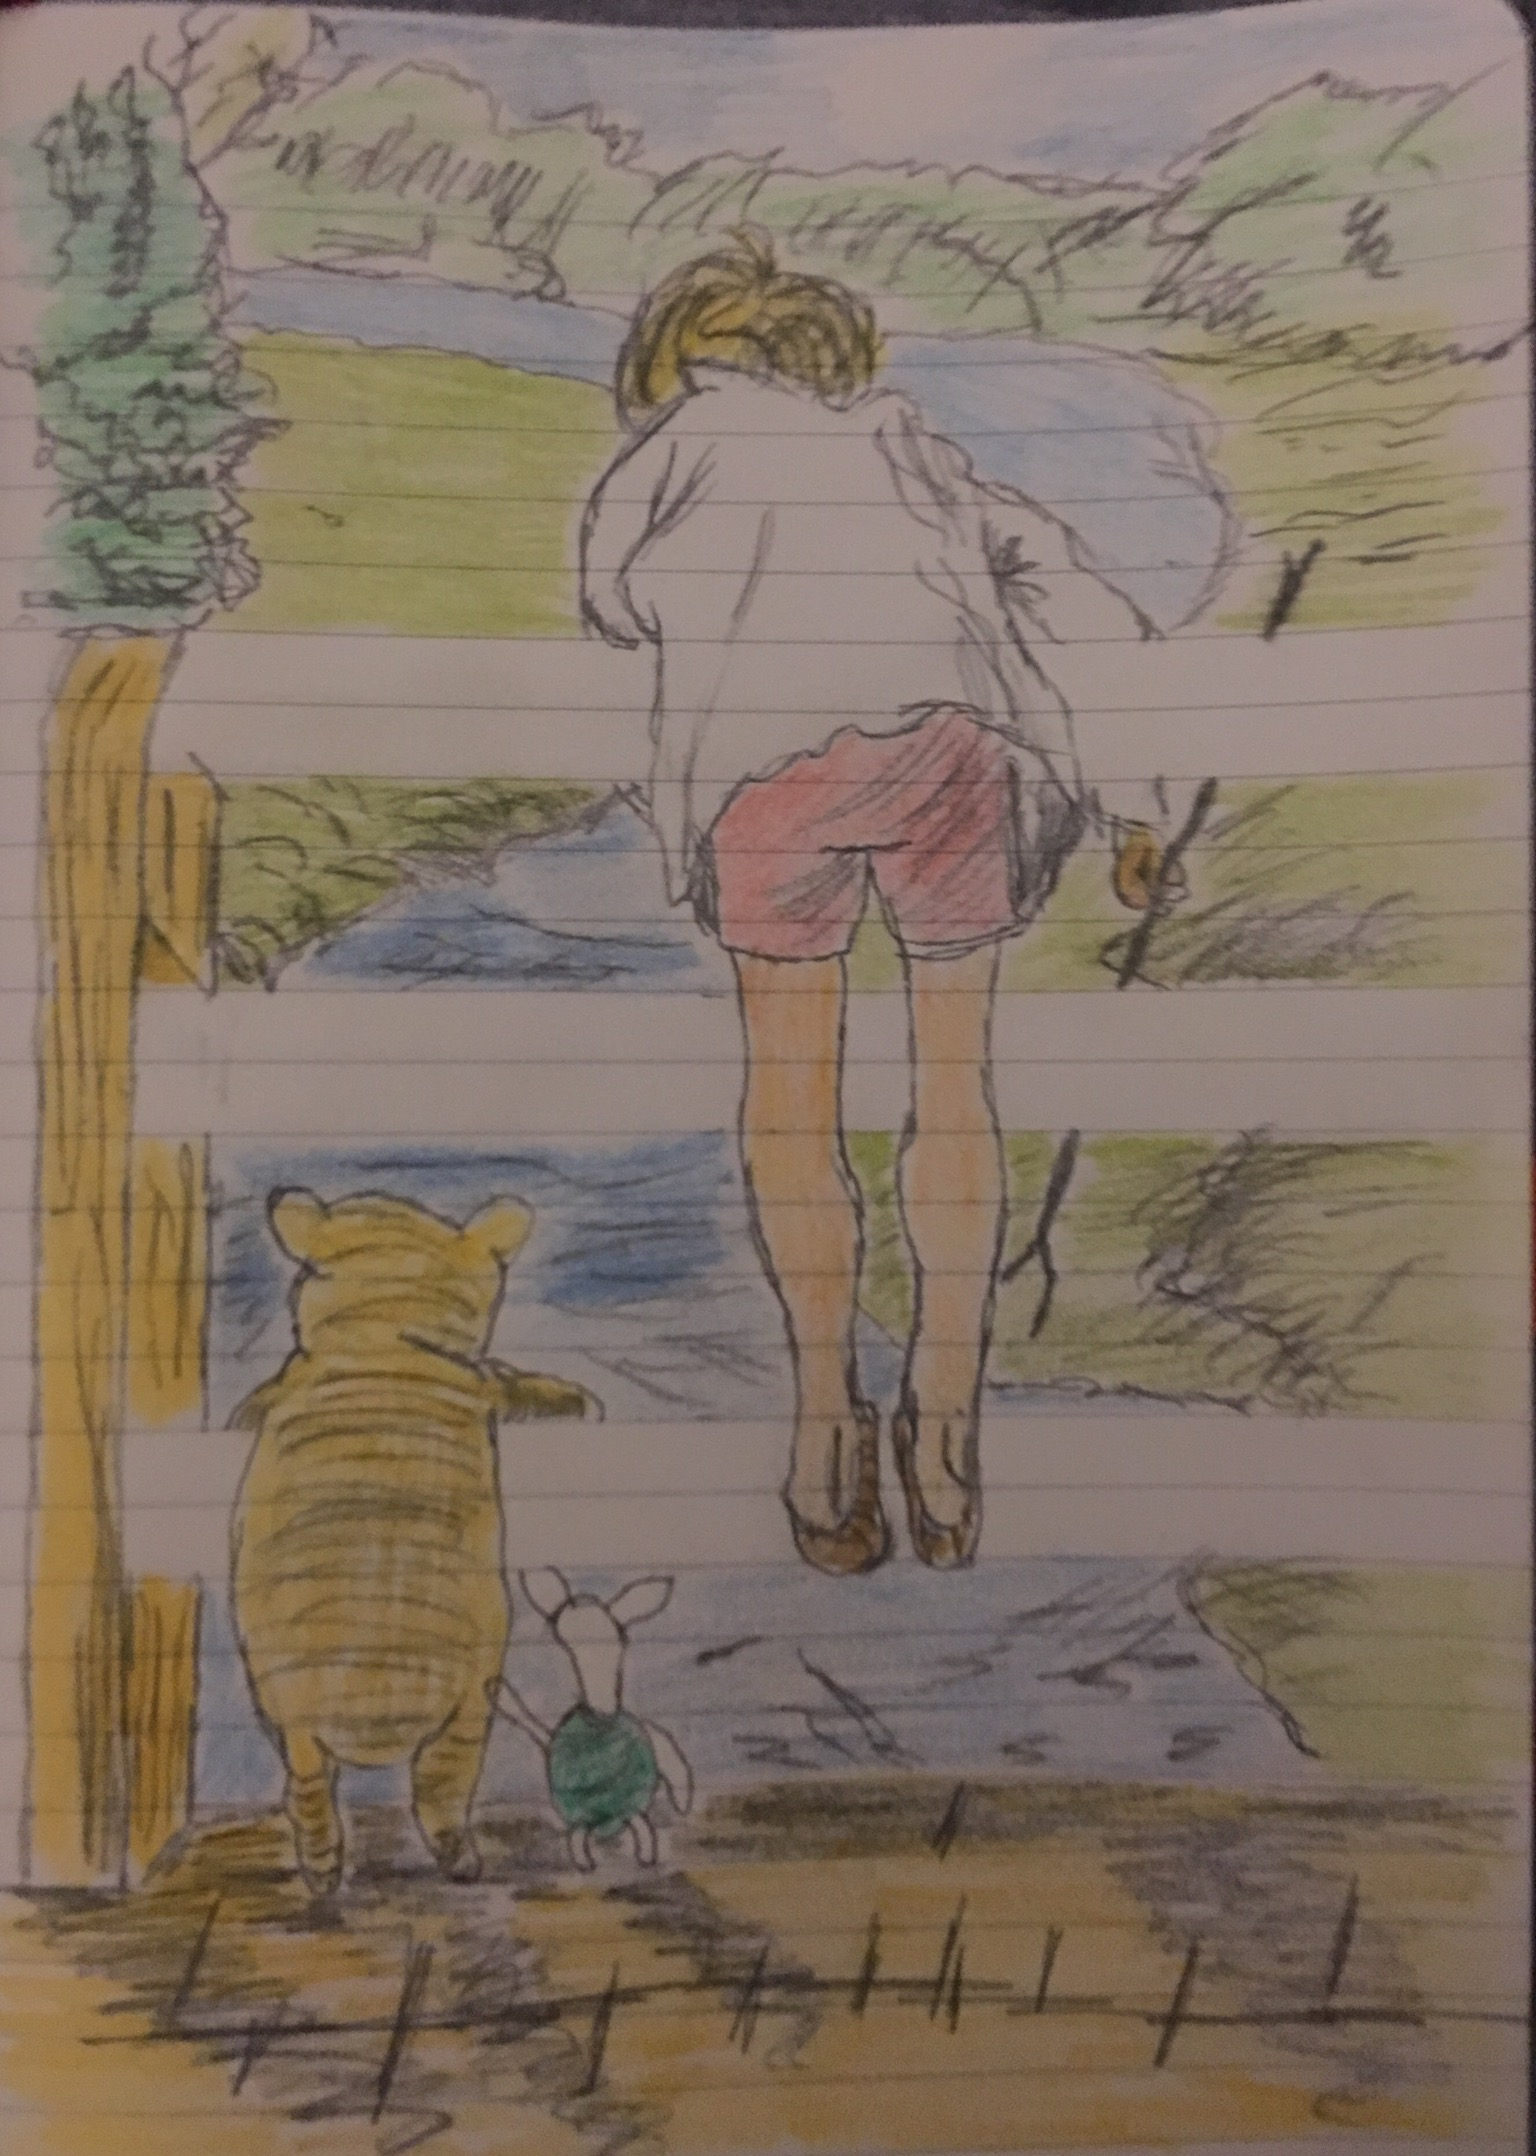 Sketch of Christopher Robin and Winnie the Pooh